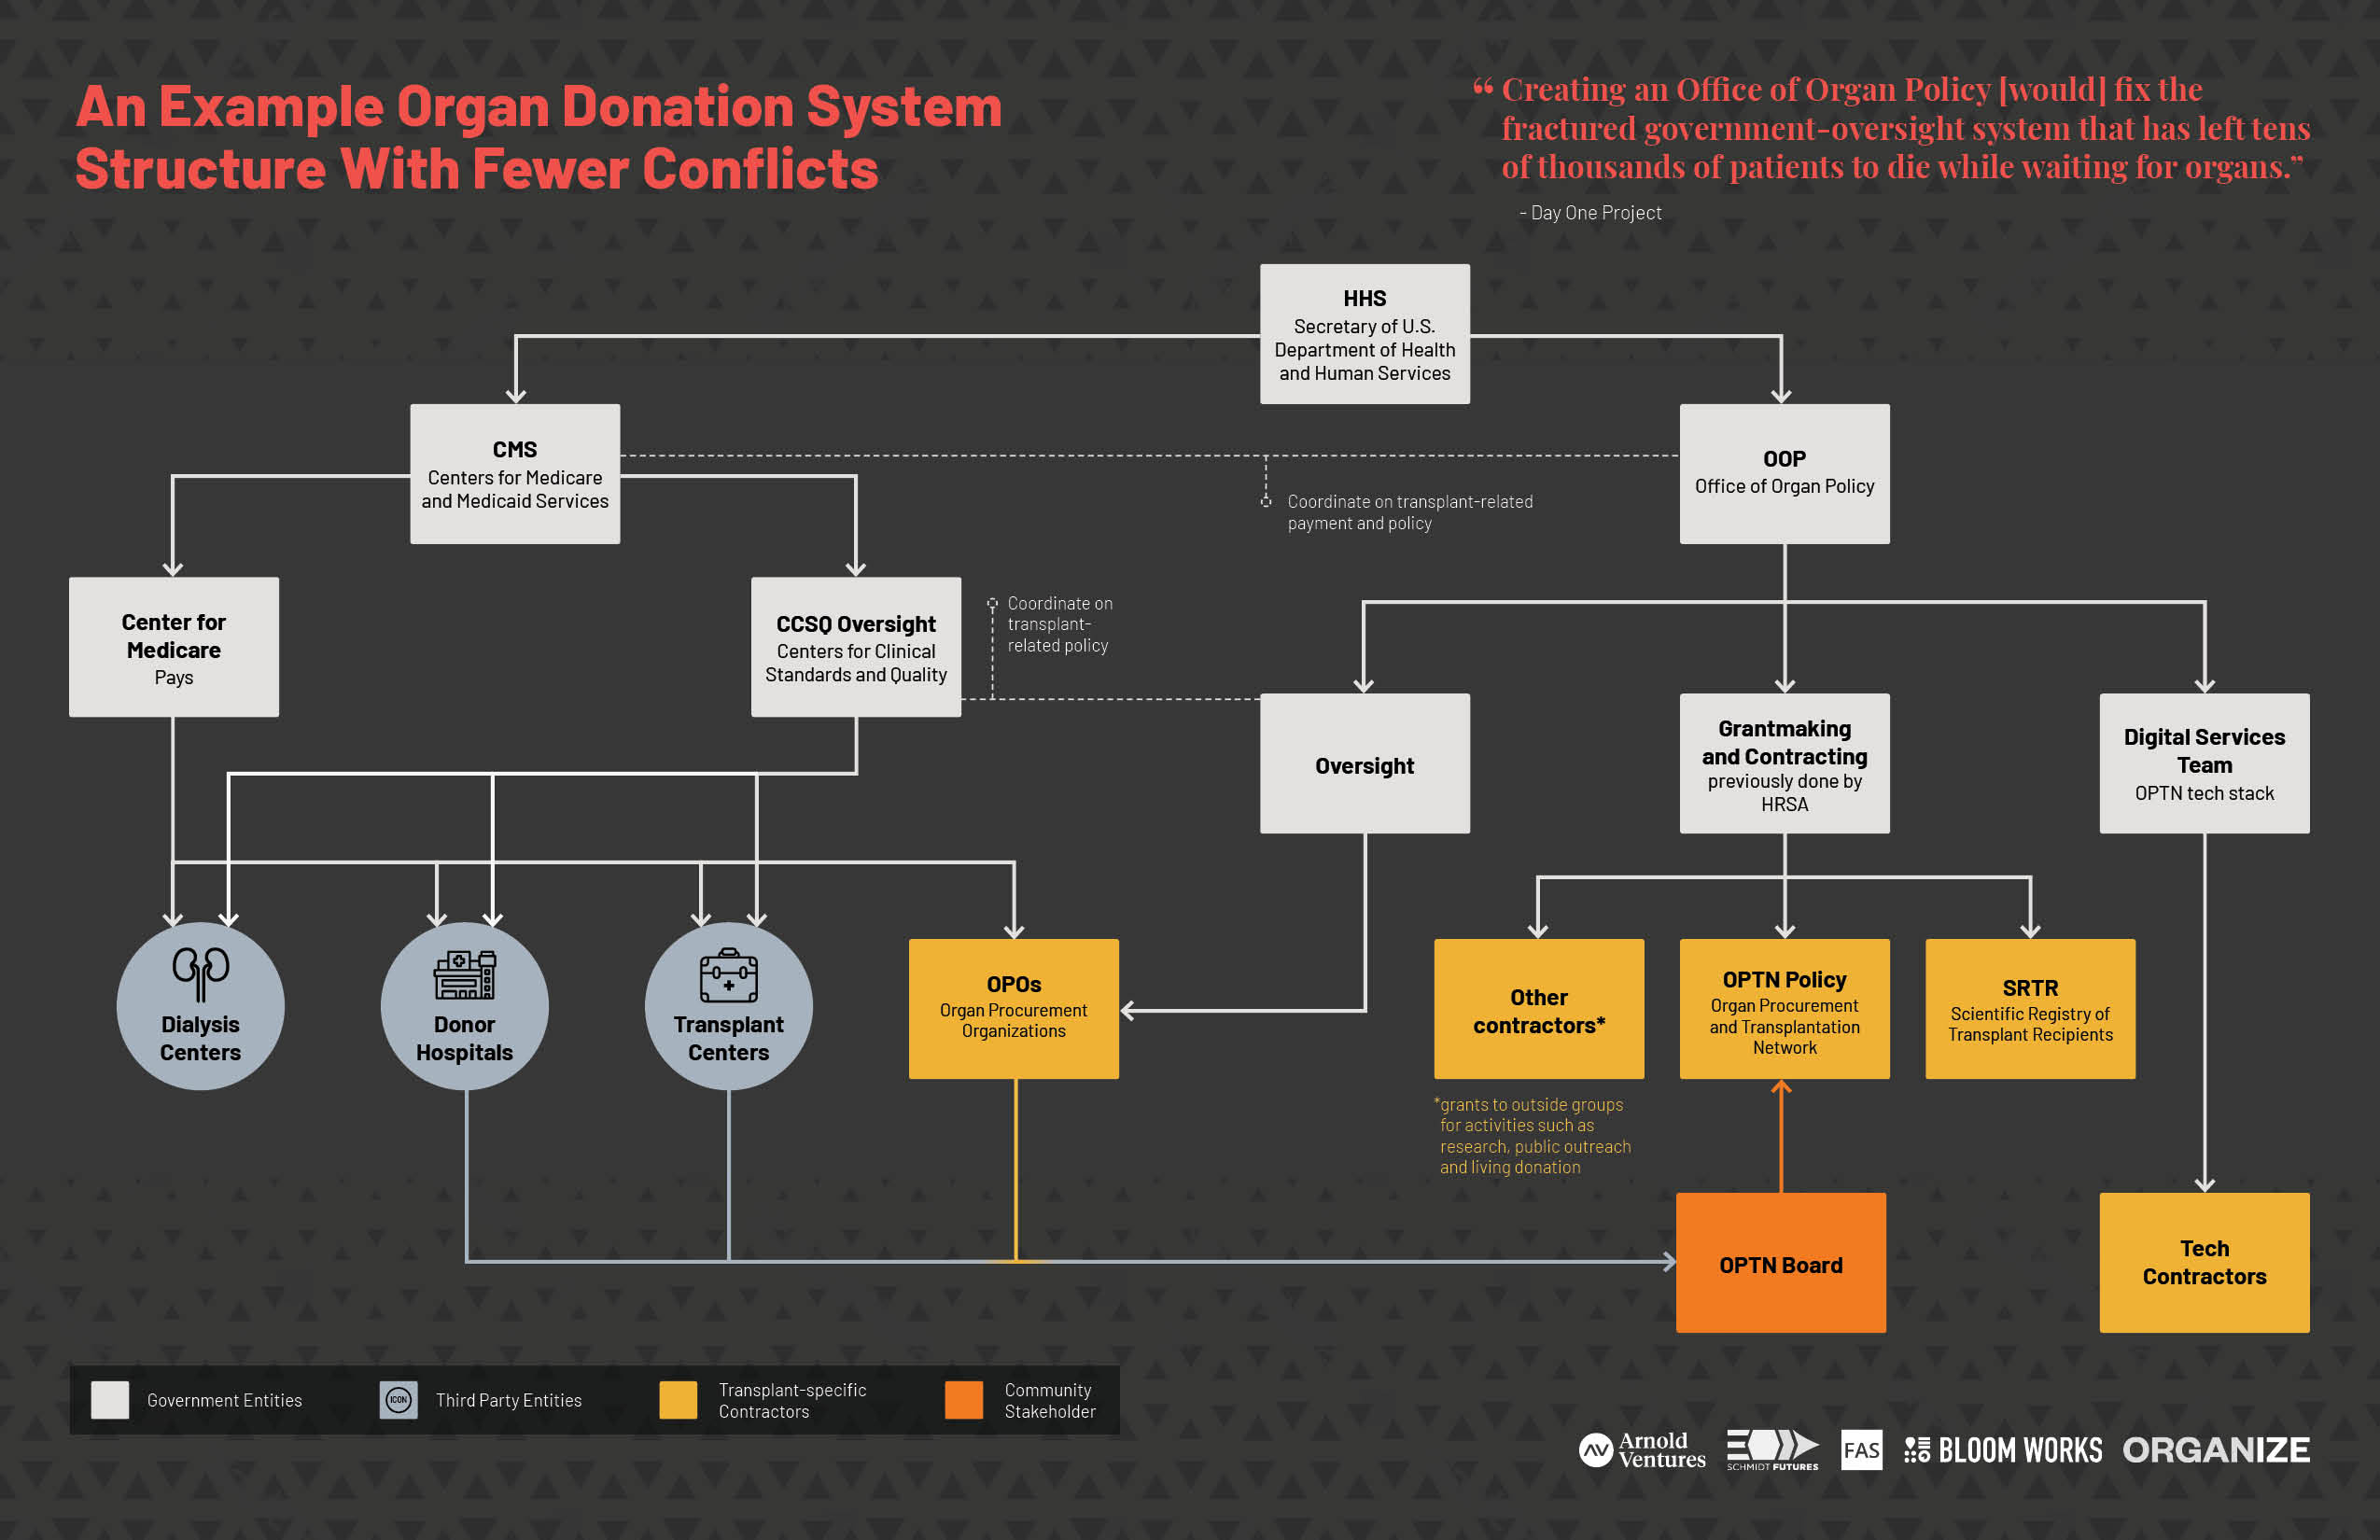 An example organ donation system structure with fewer conflicts (PDF)